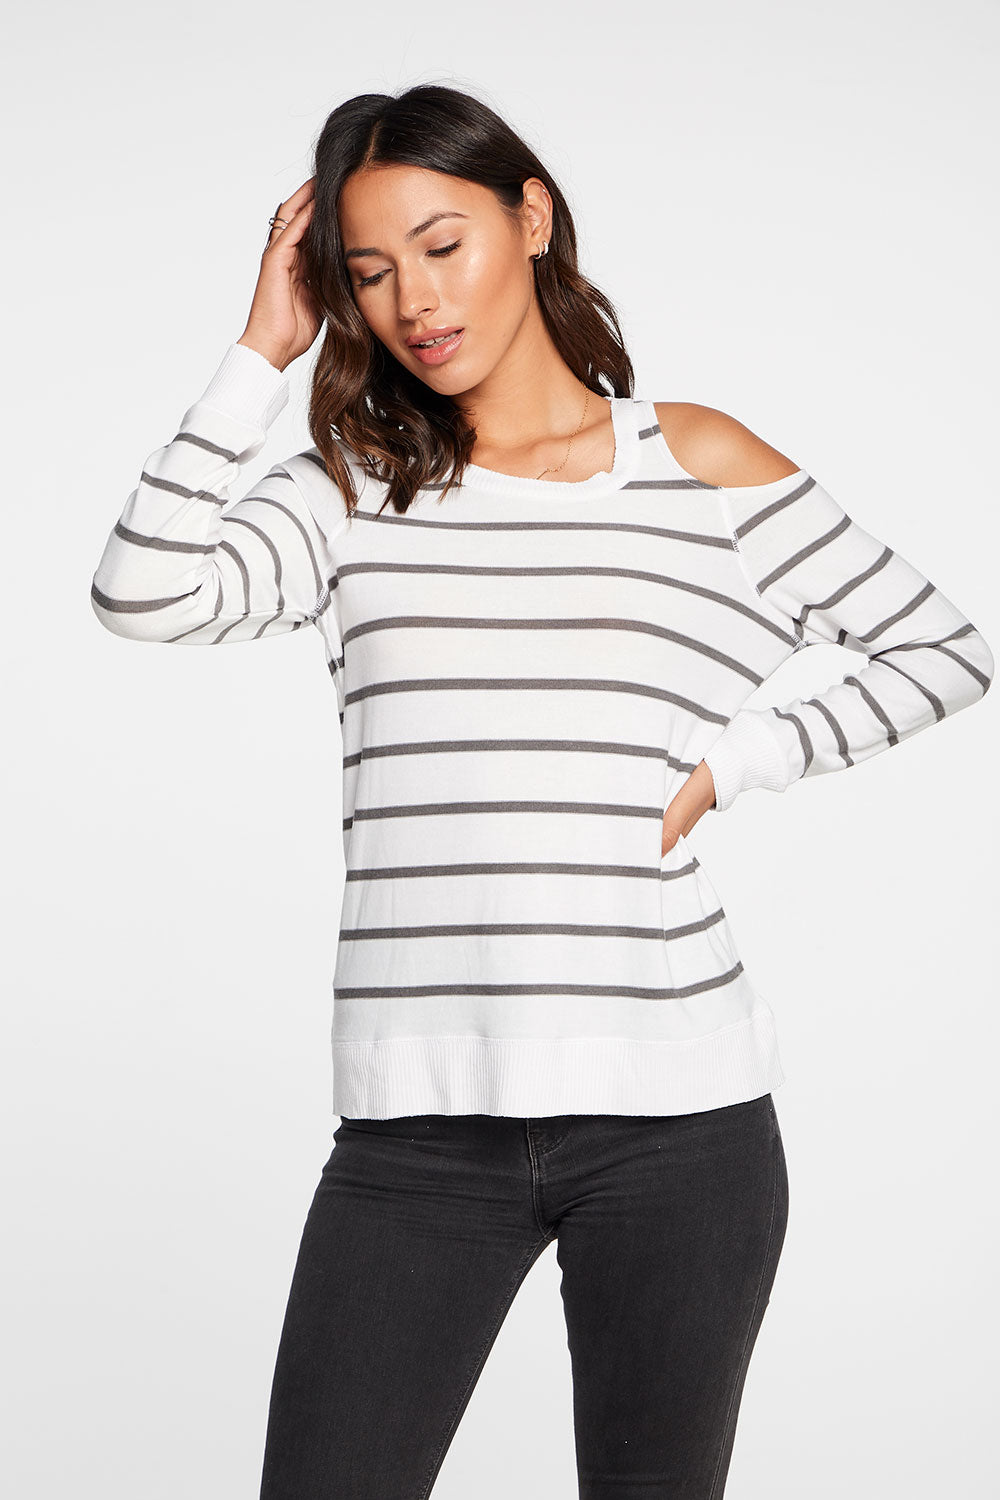 Cozy Knit Long Sleeve Vented Shoulder Pullover in Stripe WOMENS chaserbrand4.myshopify.com